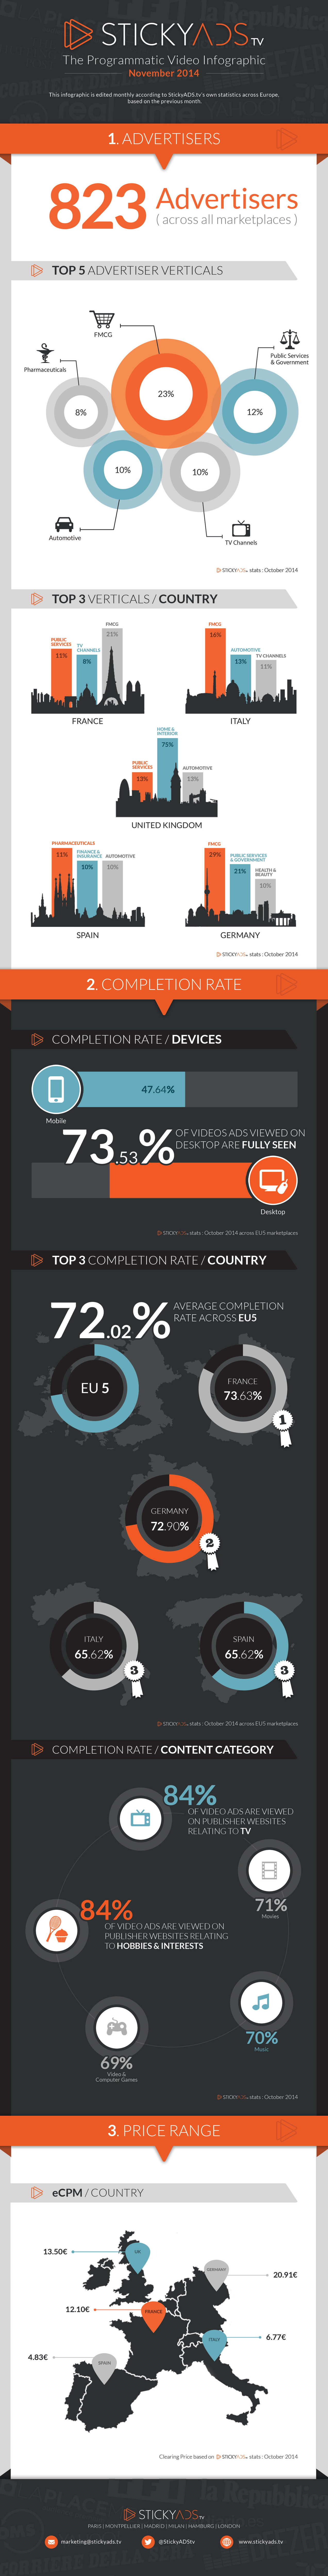 Infographic: The Programmatic Video